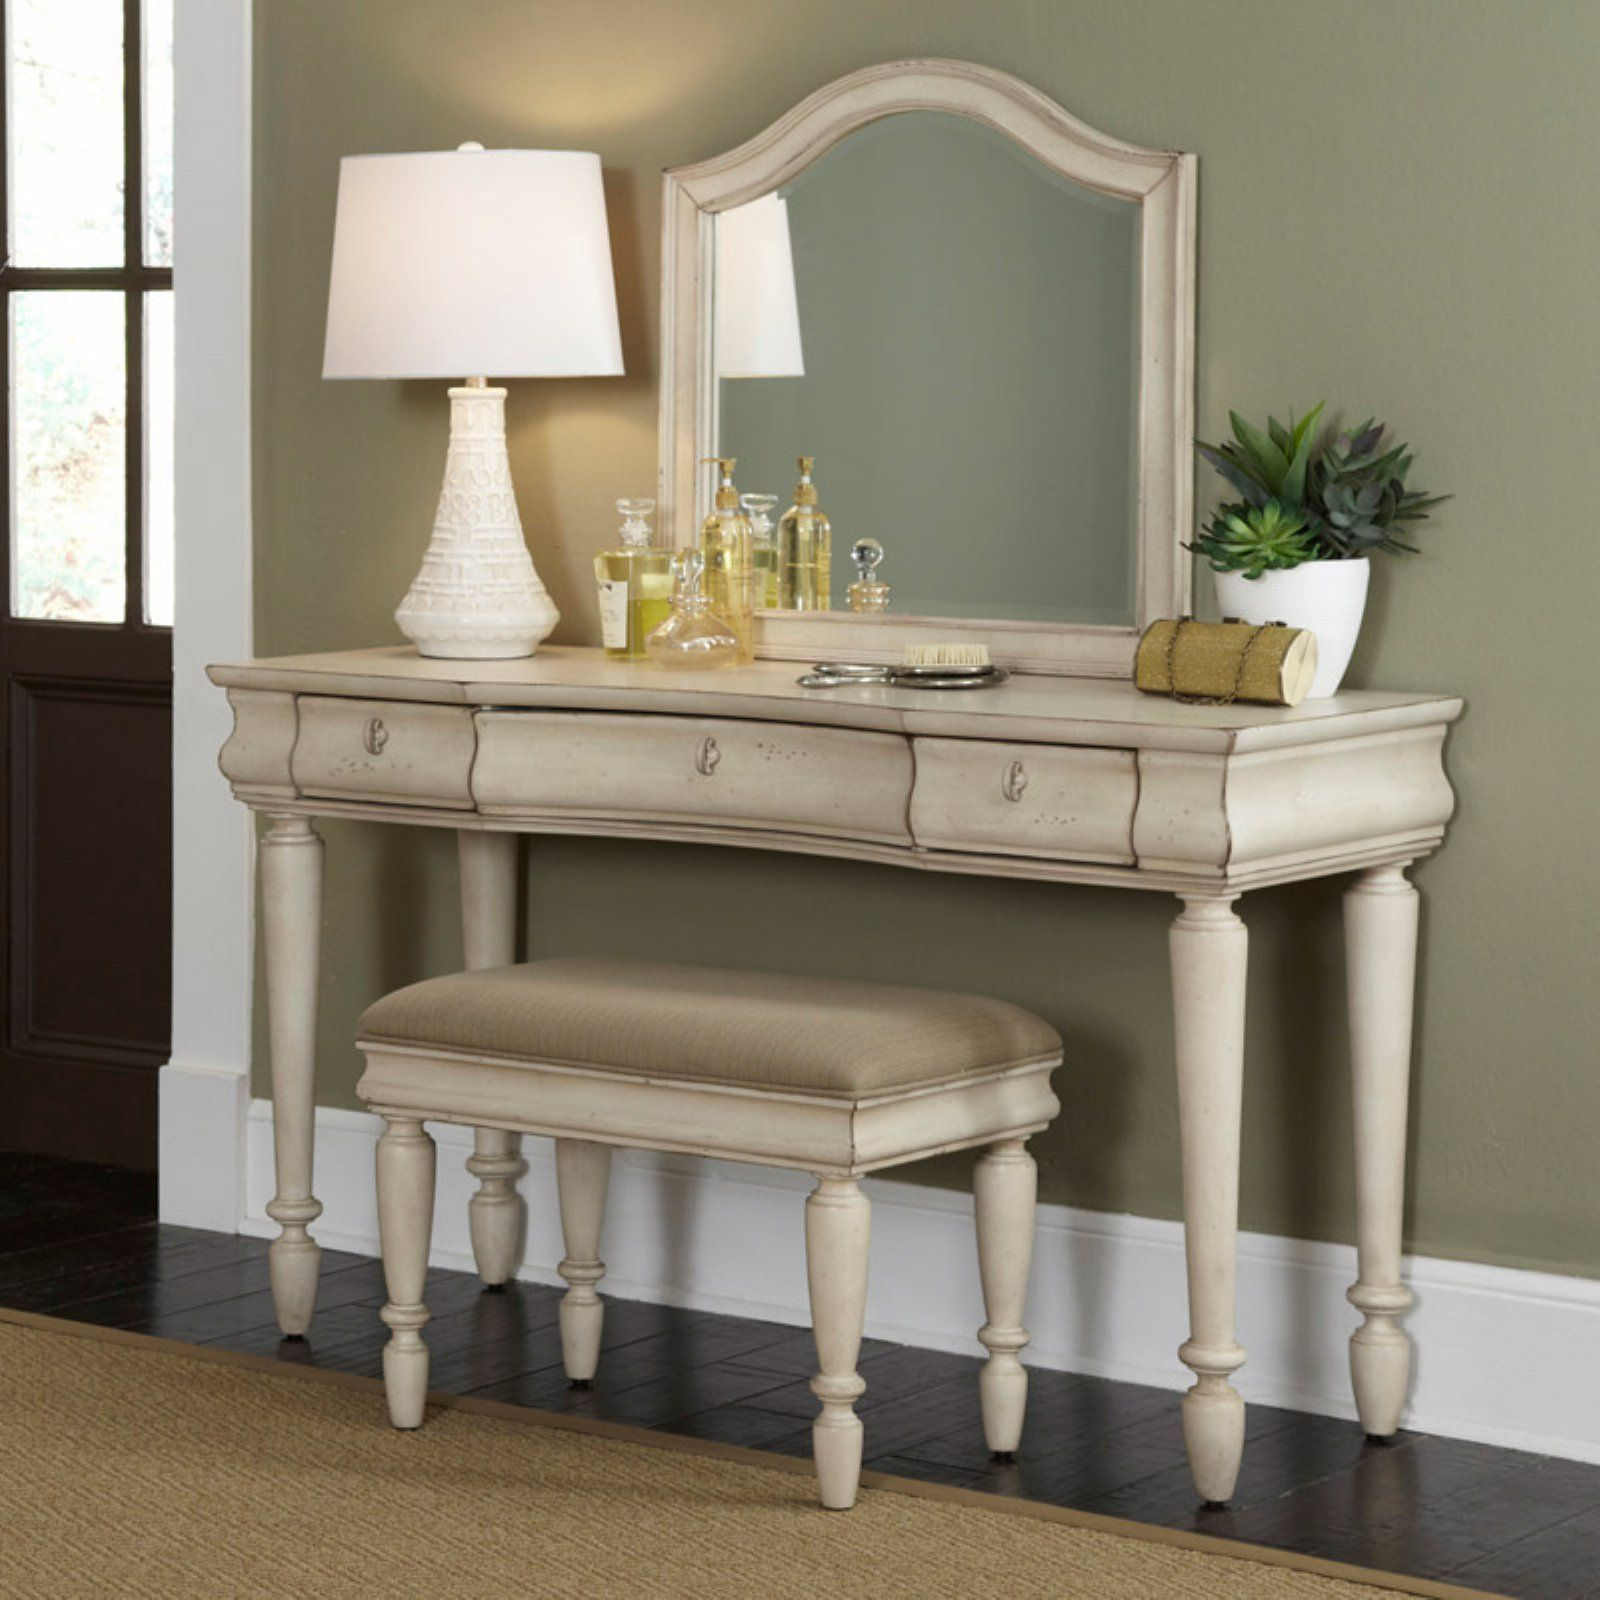 Rustic Traditions Bedroom Vanity Set - Rustic White | Products in ...